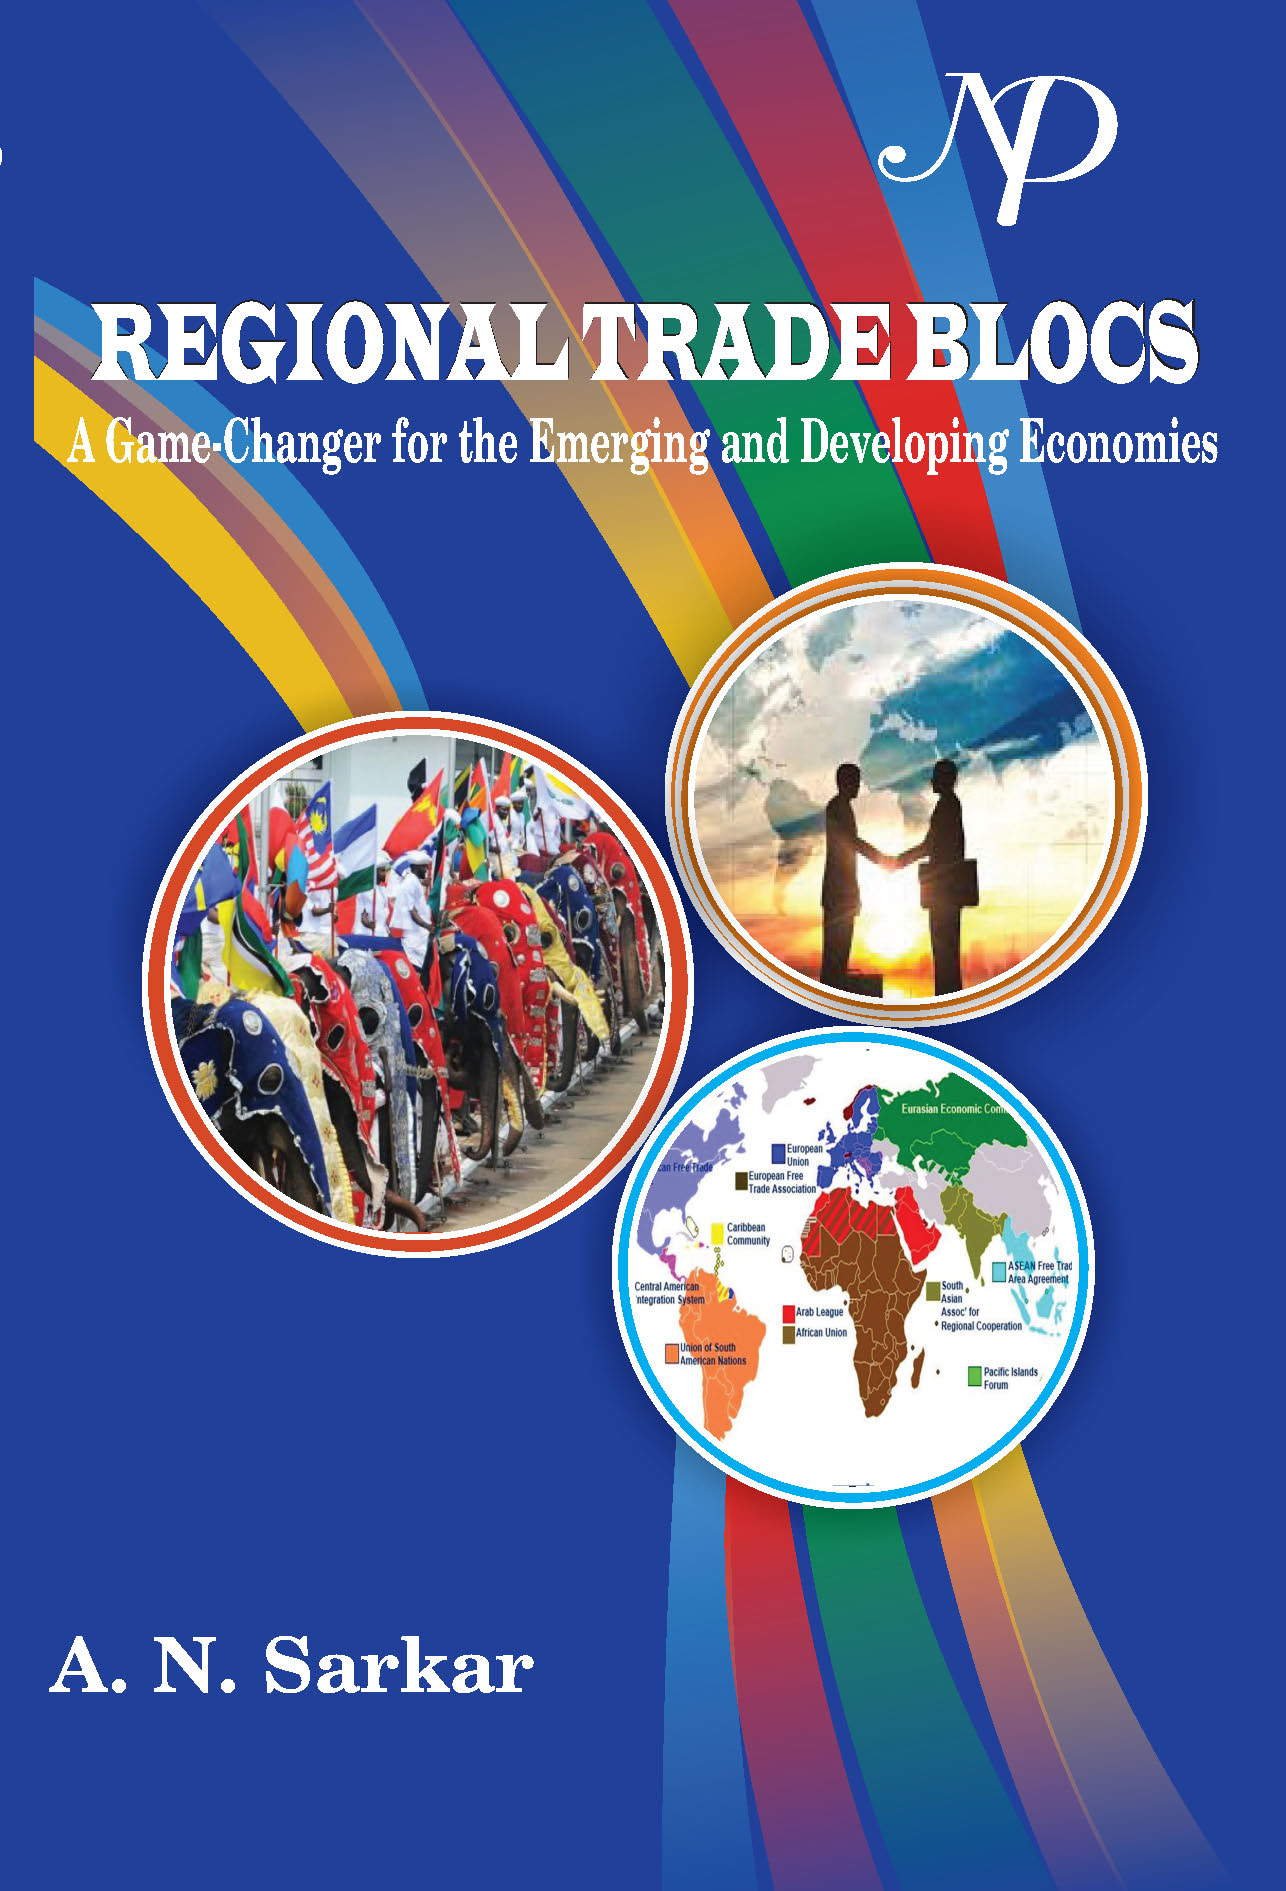 REGIONAL TRADE BLOCS cover page.jpg